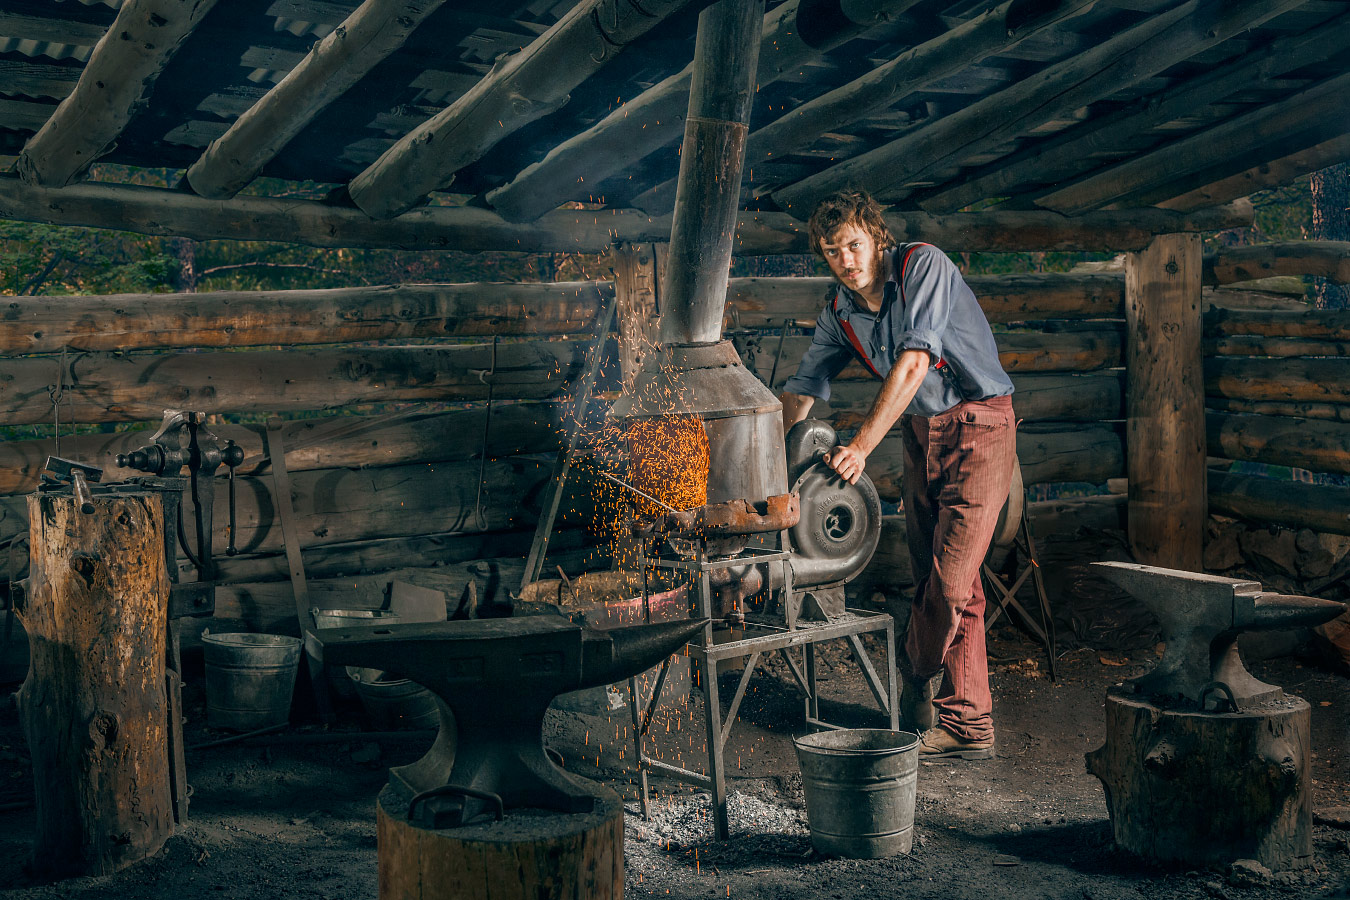 Gage Reigleman Blacksmith Cyphers Mine Philmont Scout Ranch Cimarron New Mexico